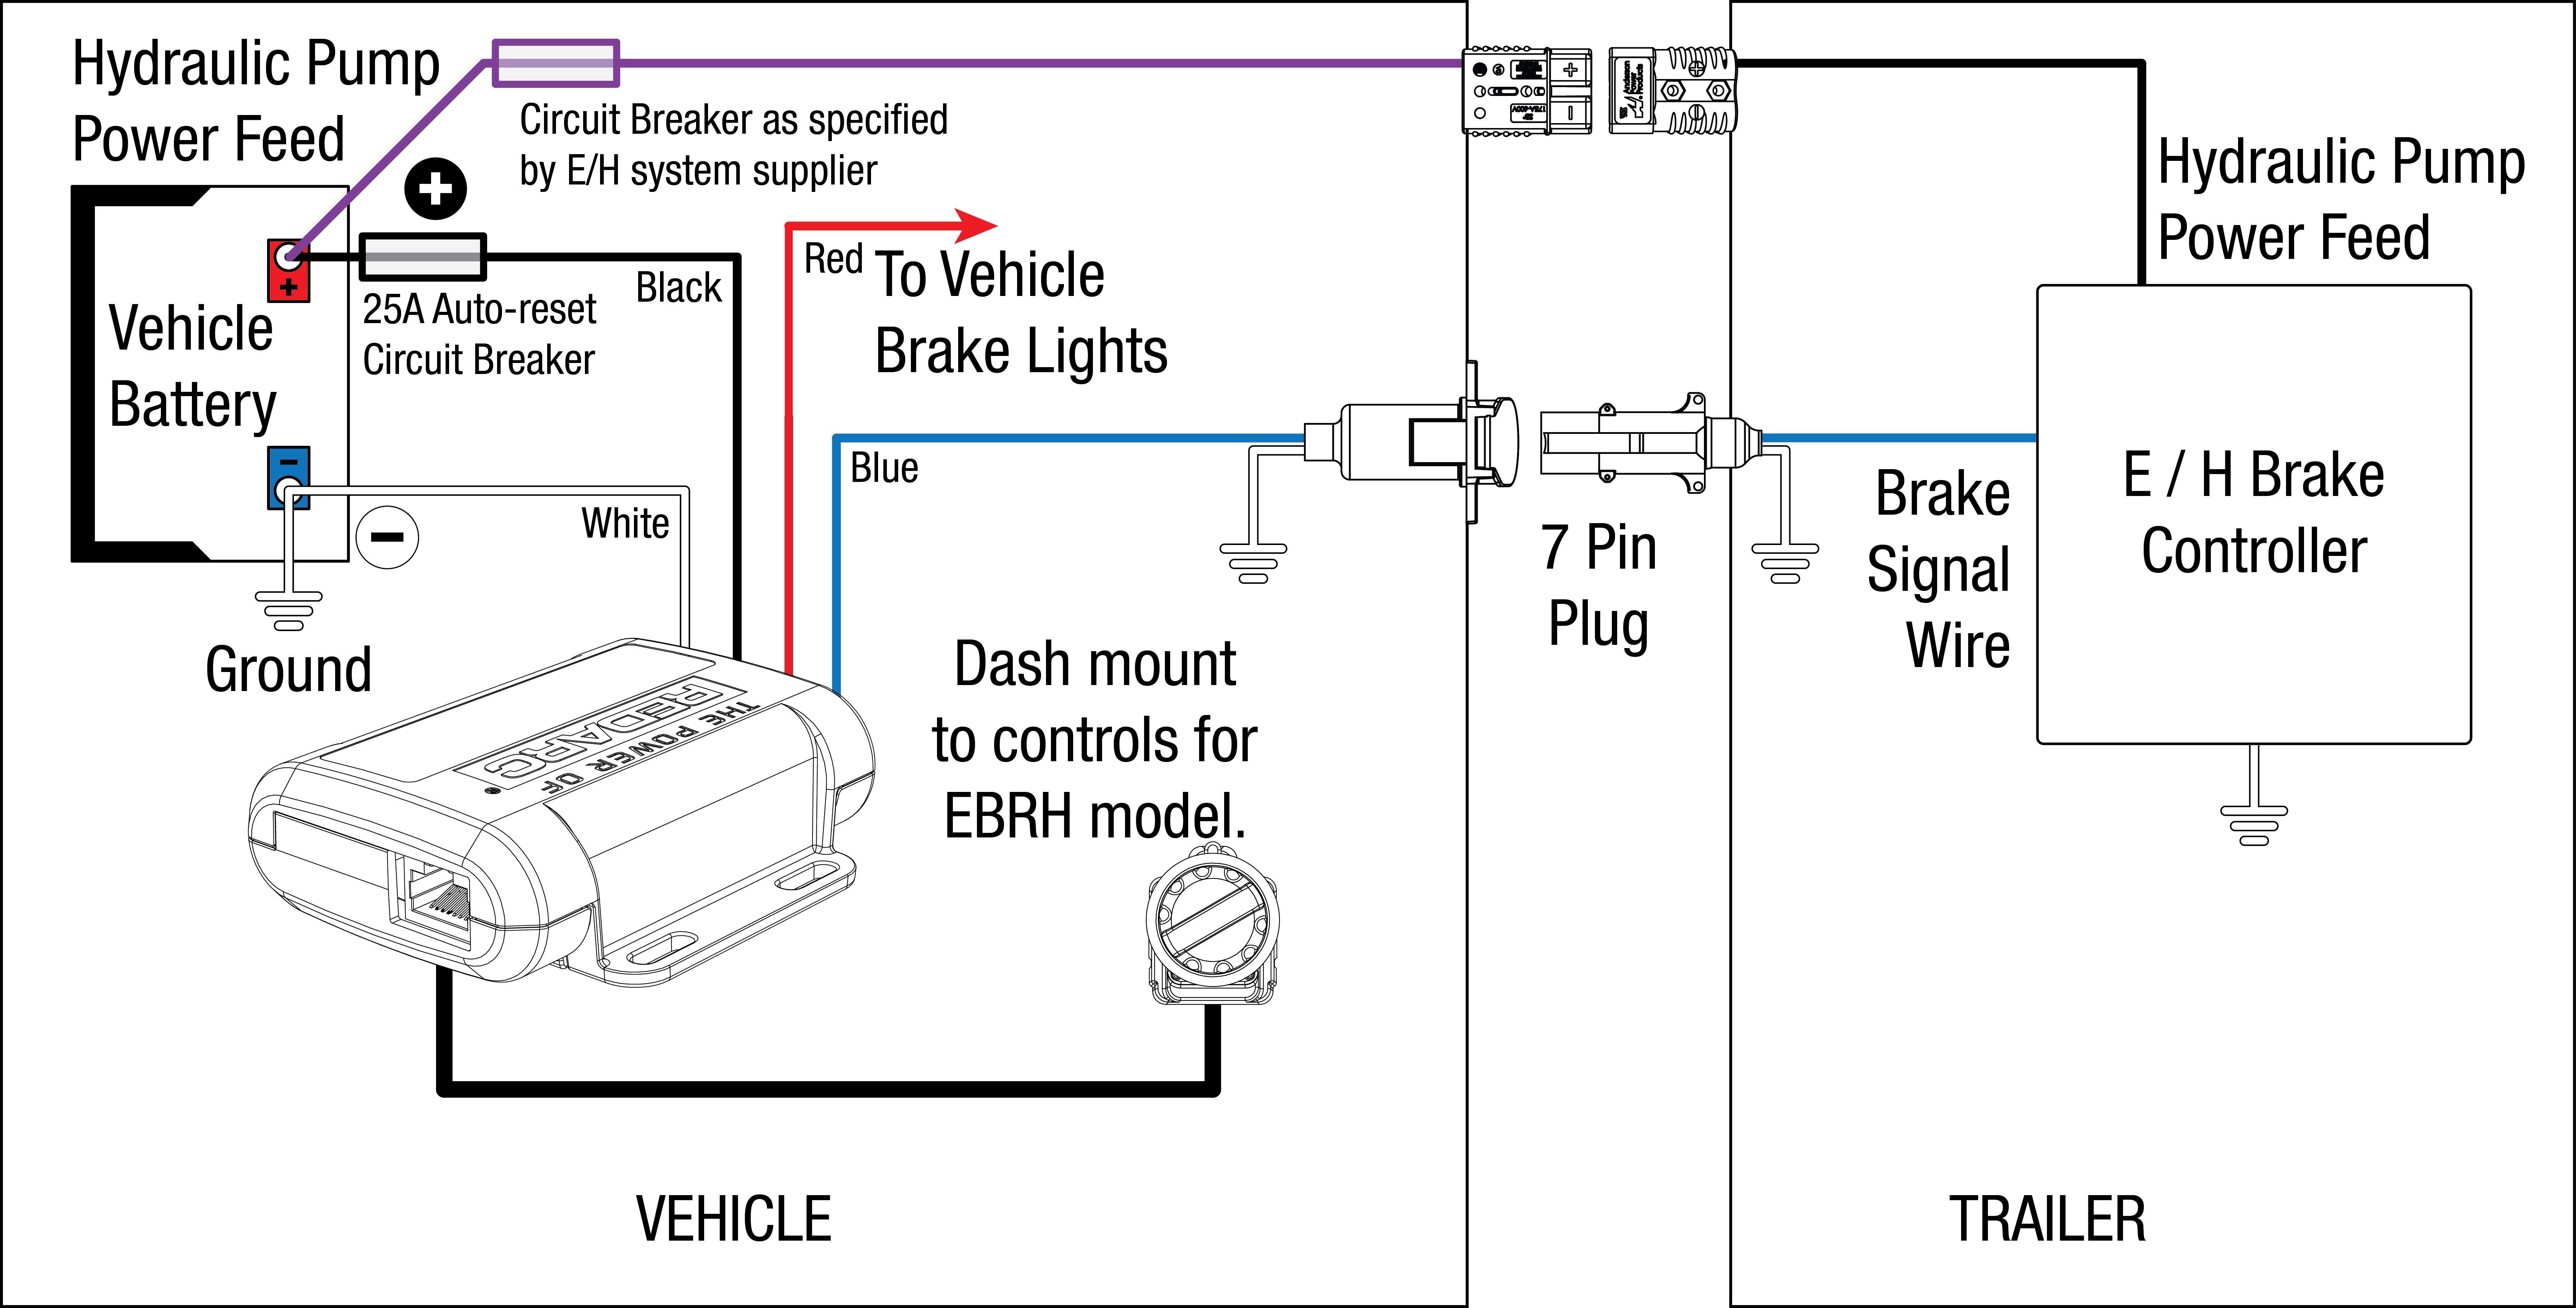 The12volt Wiring Diagrams techrush